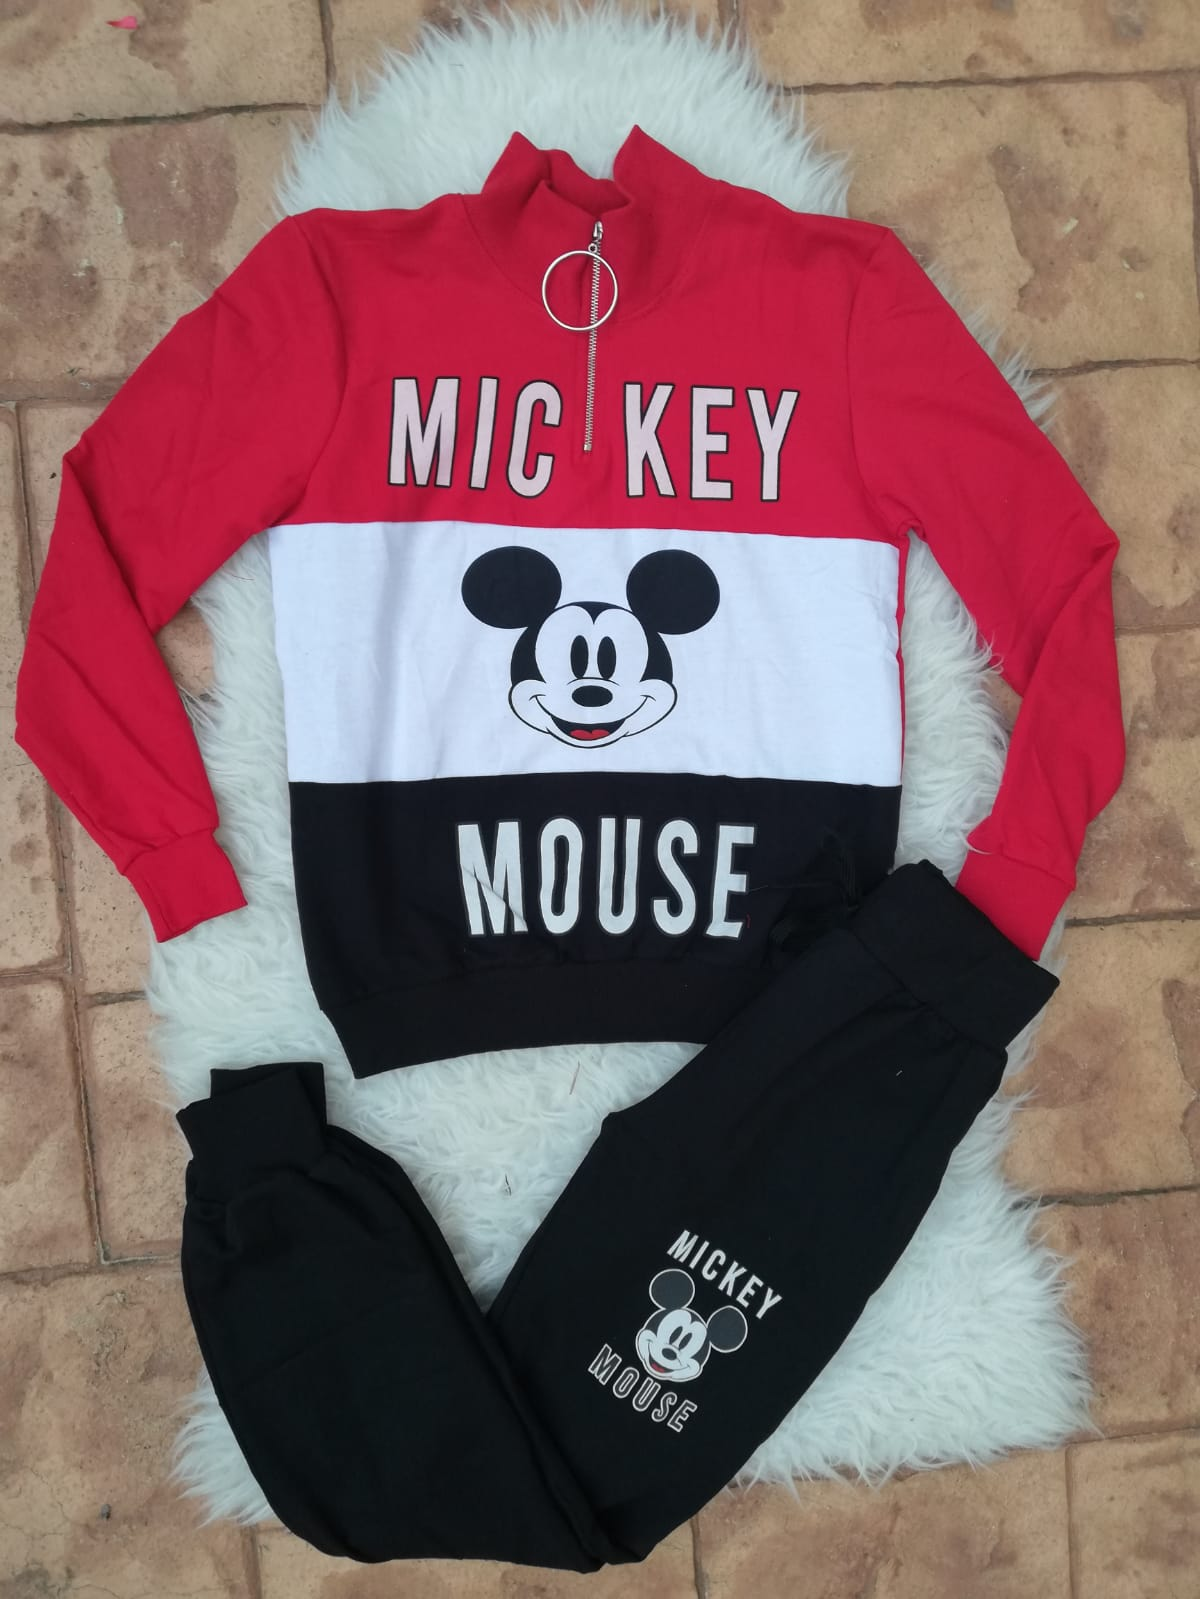 Trening dama 2 piese Mickey Mouse